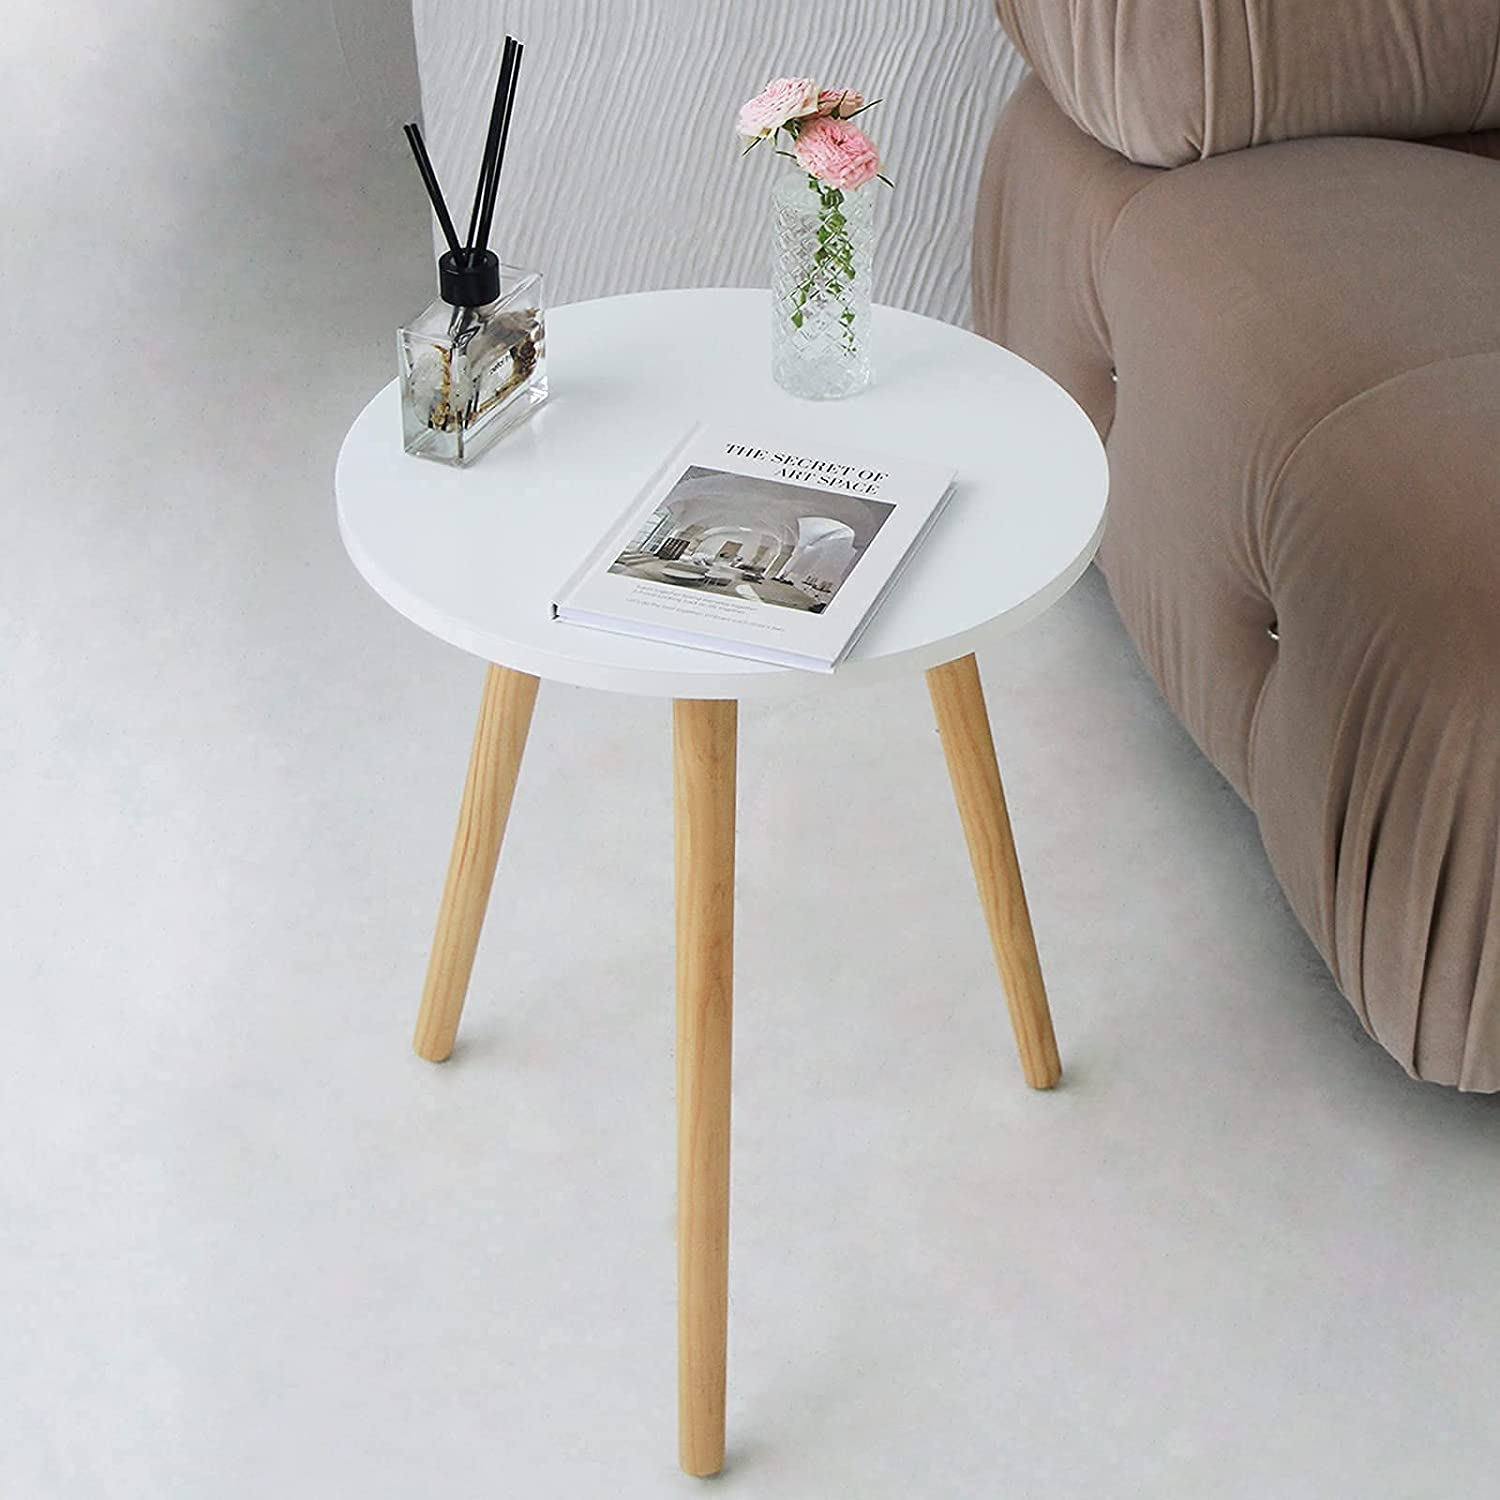 AWASEN Round Side Table, Small Accent Table Nightstand Modern End Table for Living Room Bedroom Office Small Spaces, 16''D x 19.5''H (White)